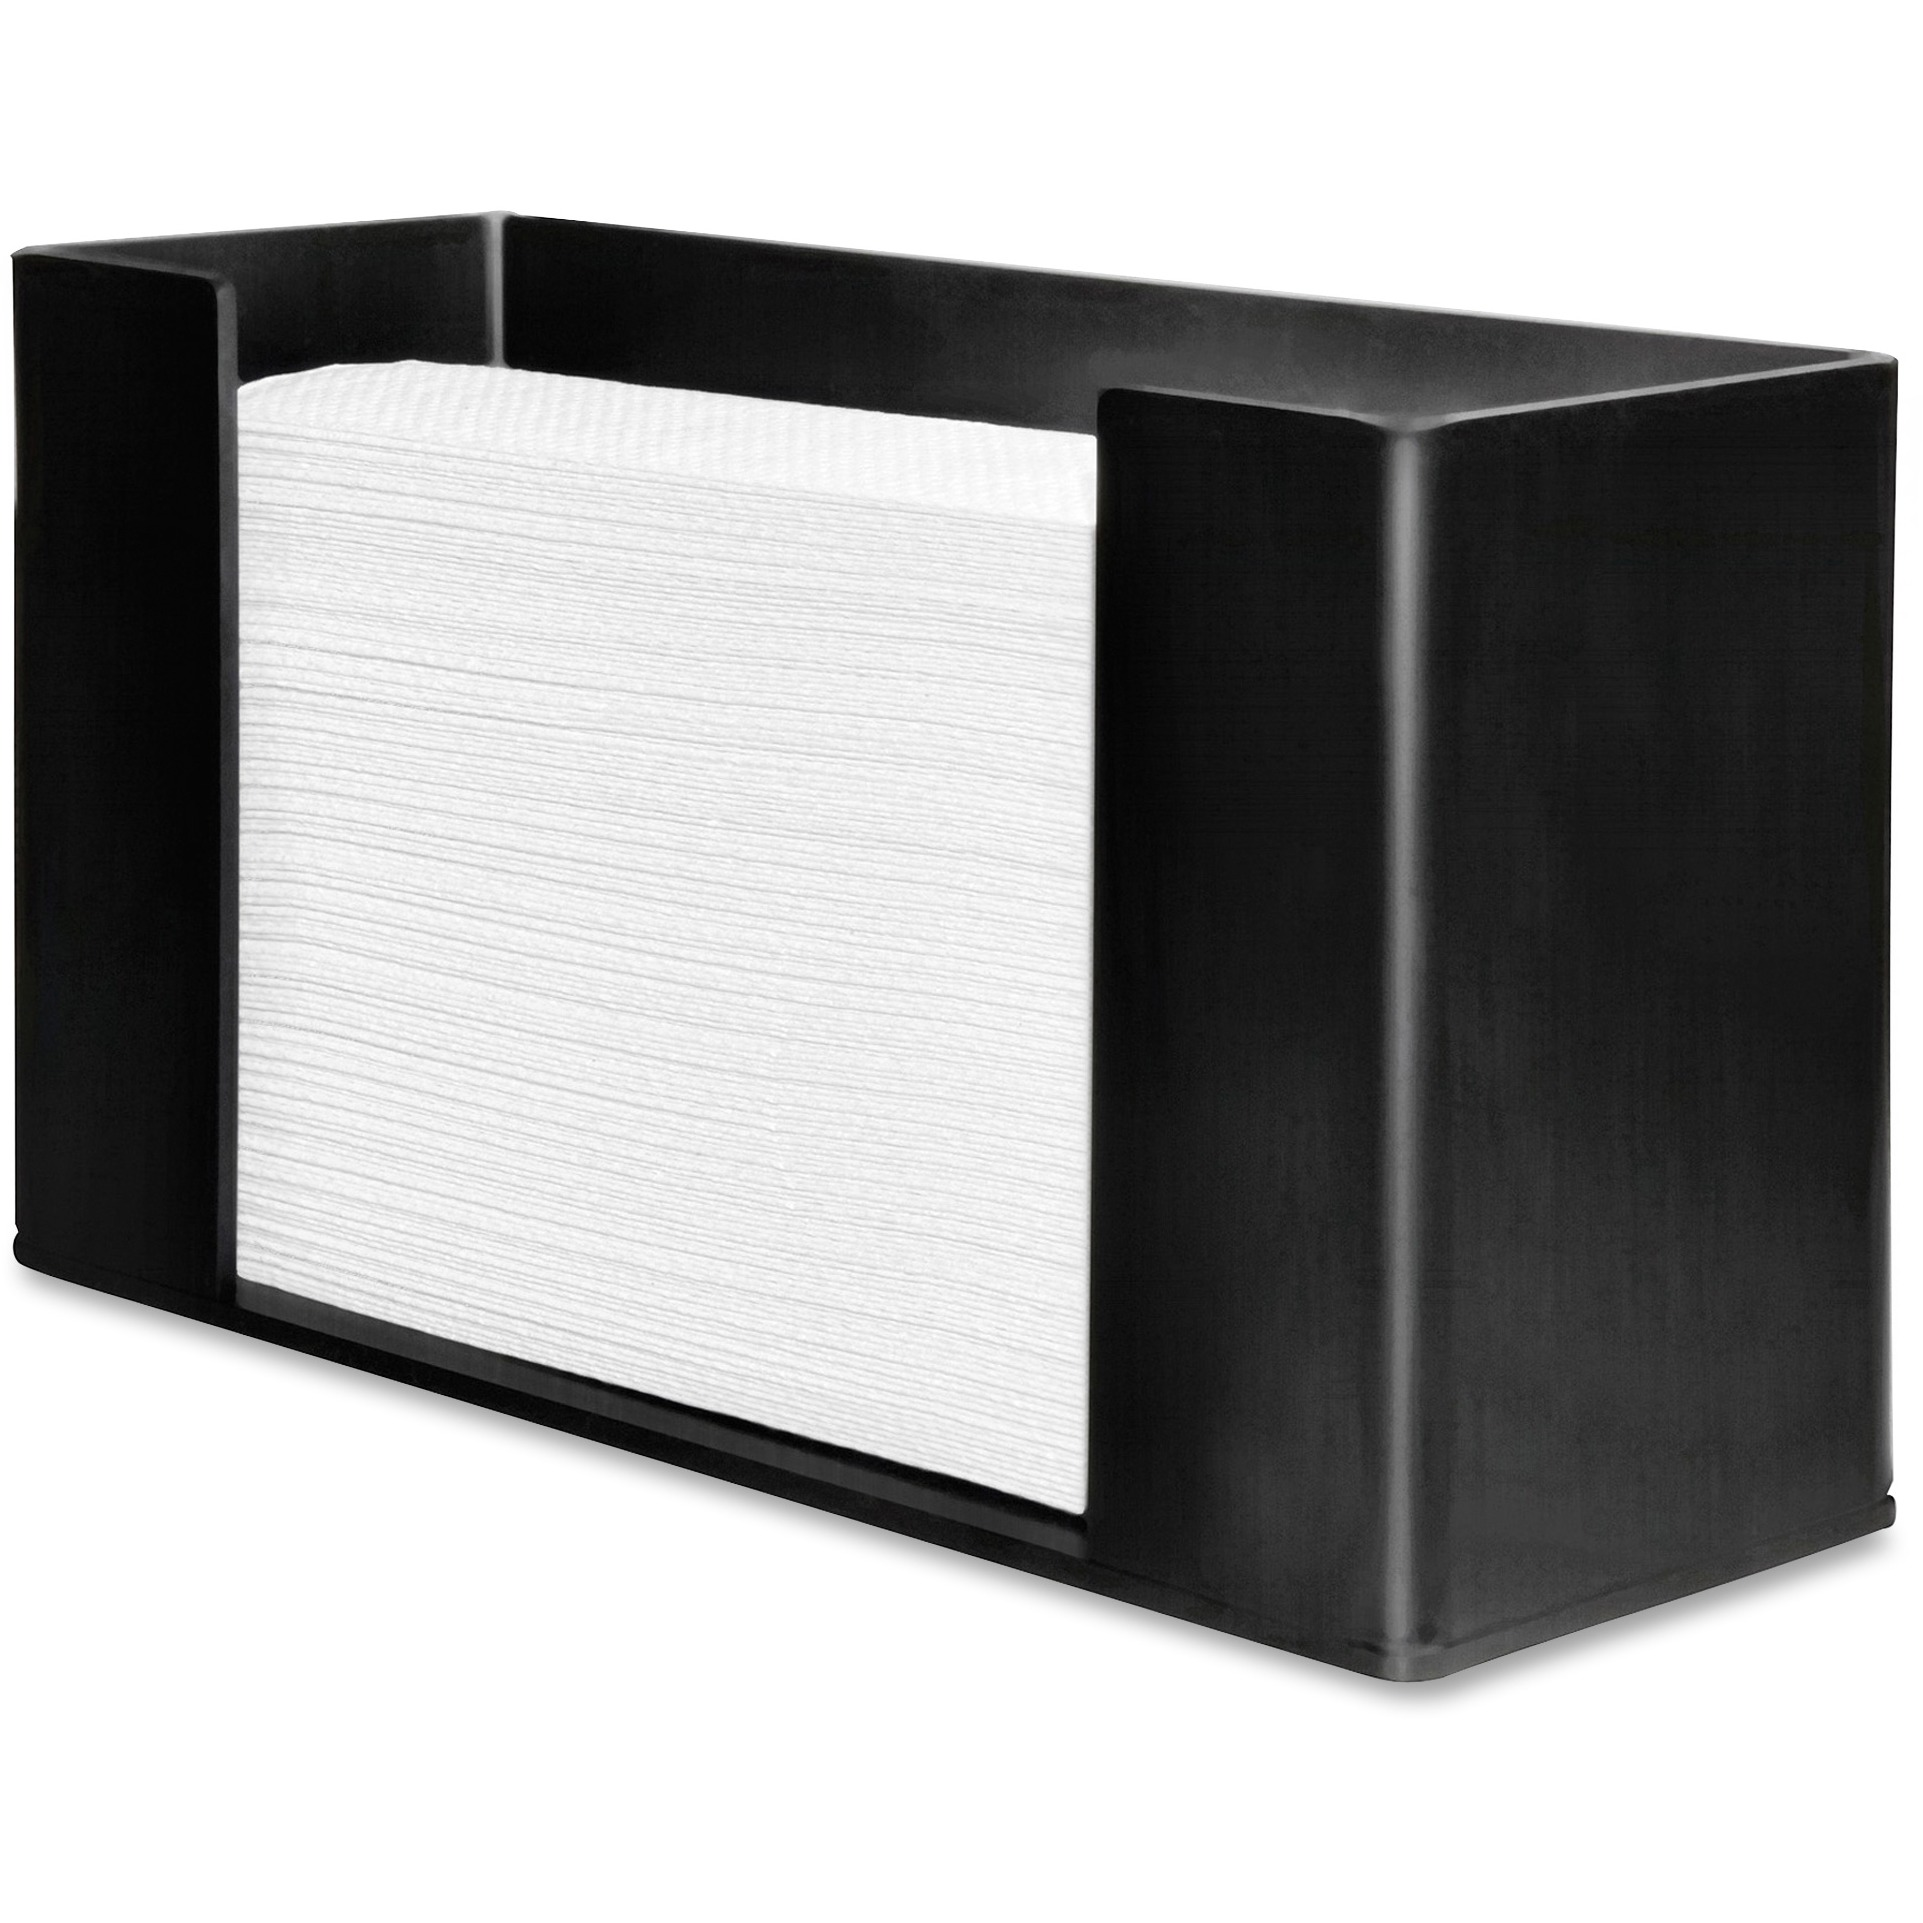 "Genuine Joe Folded Paper Towel Dispenser, 6.8"" x 11.5"" x 4.1"", GJO11524"